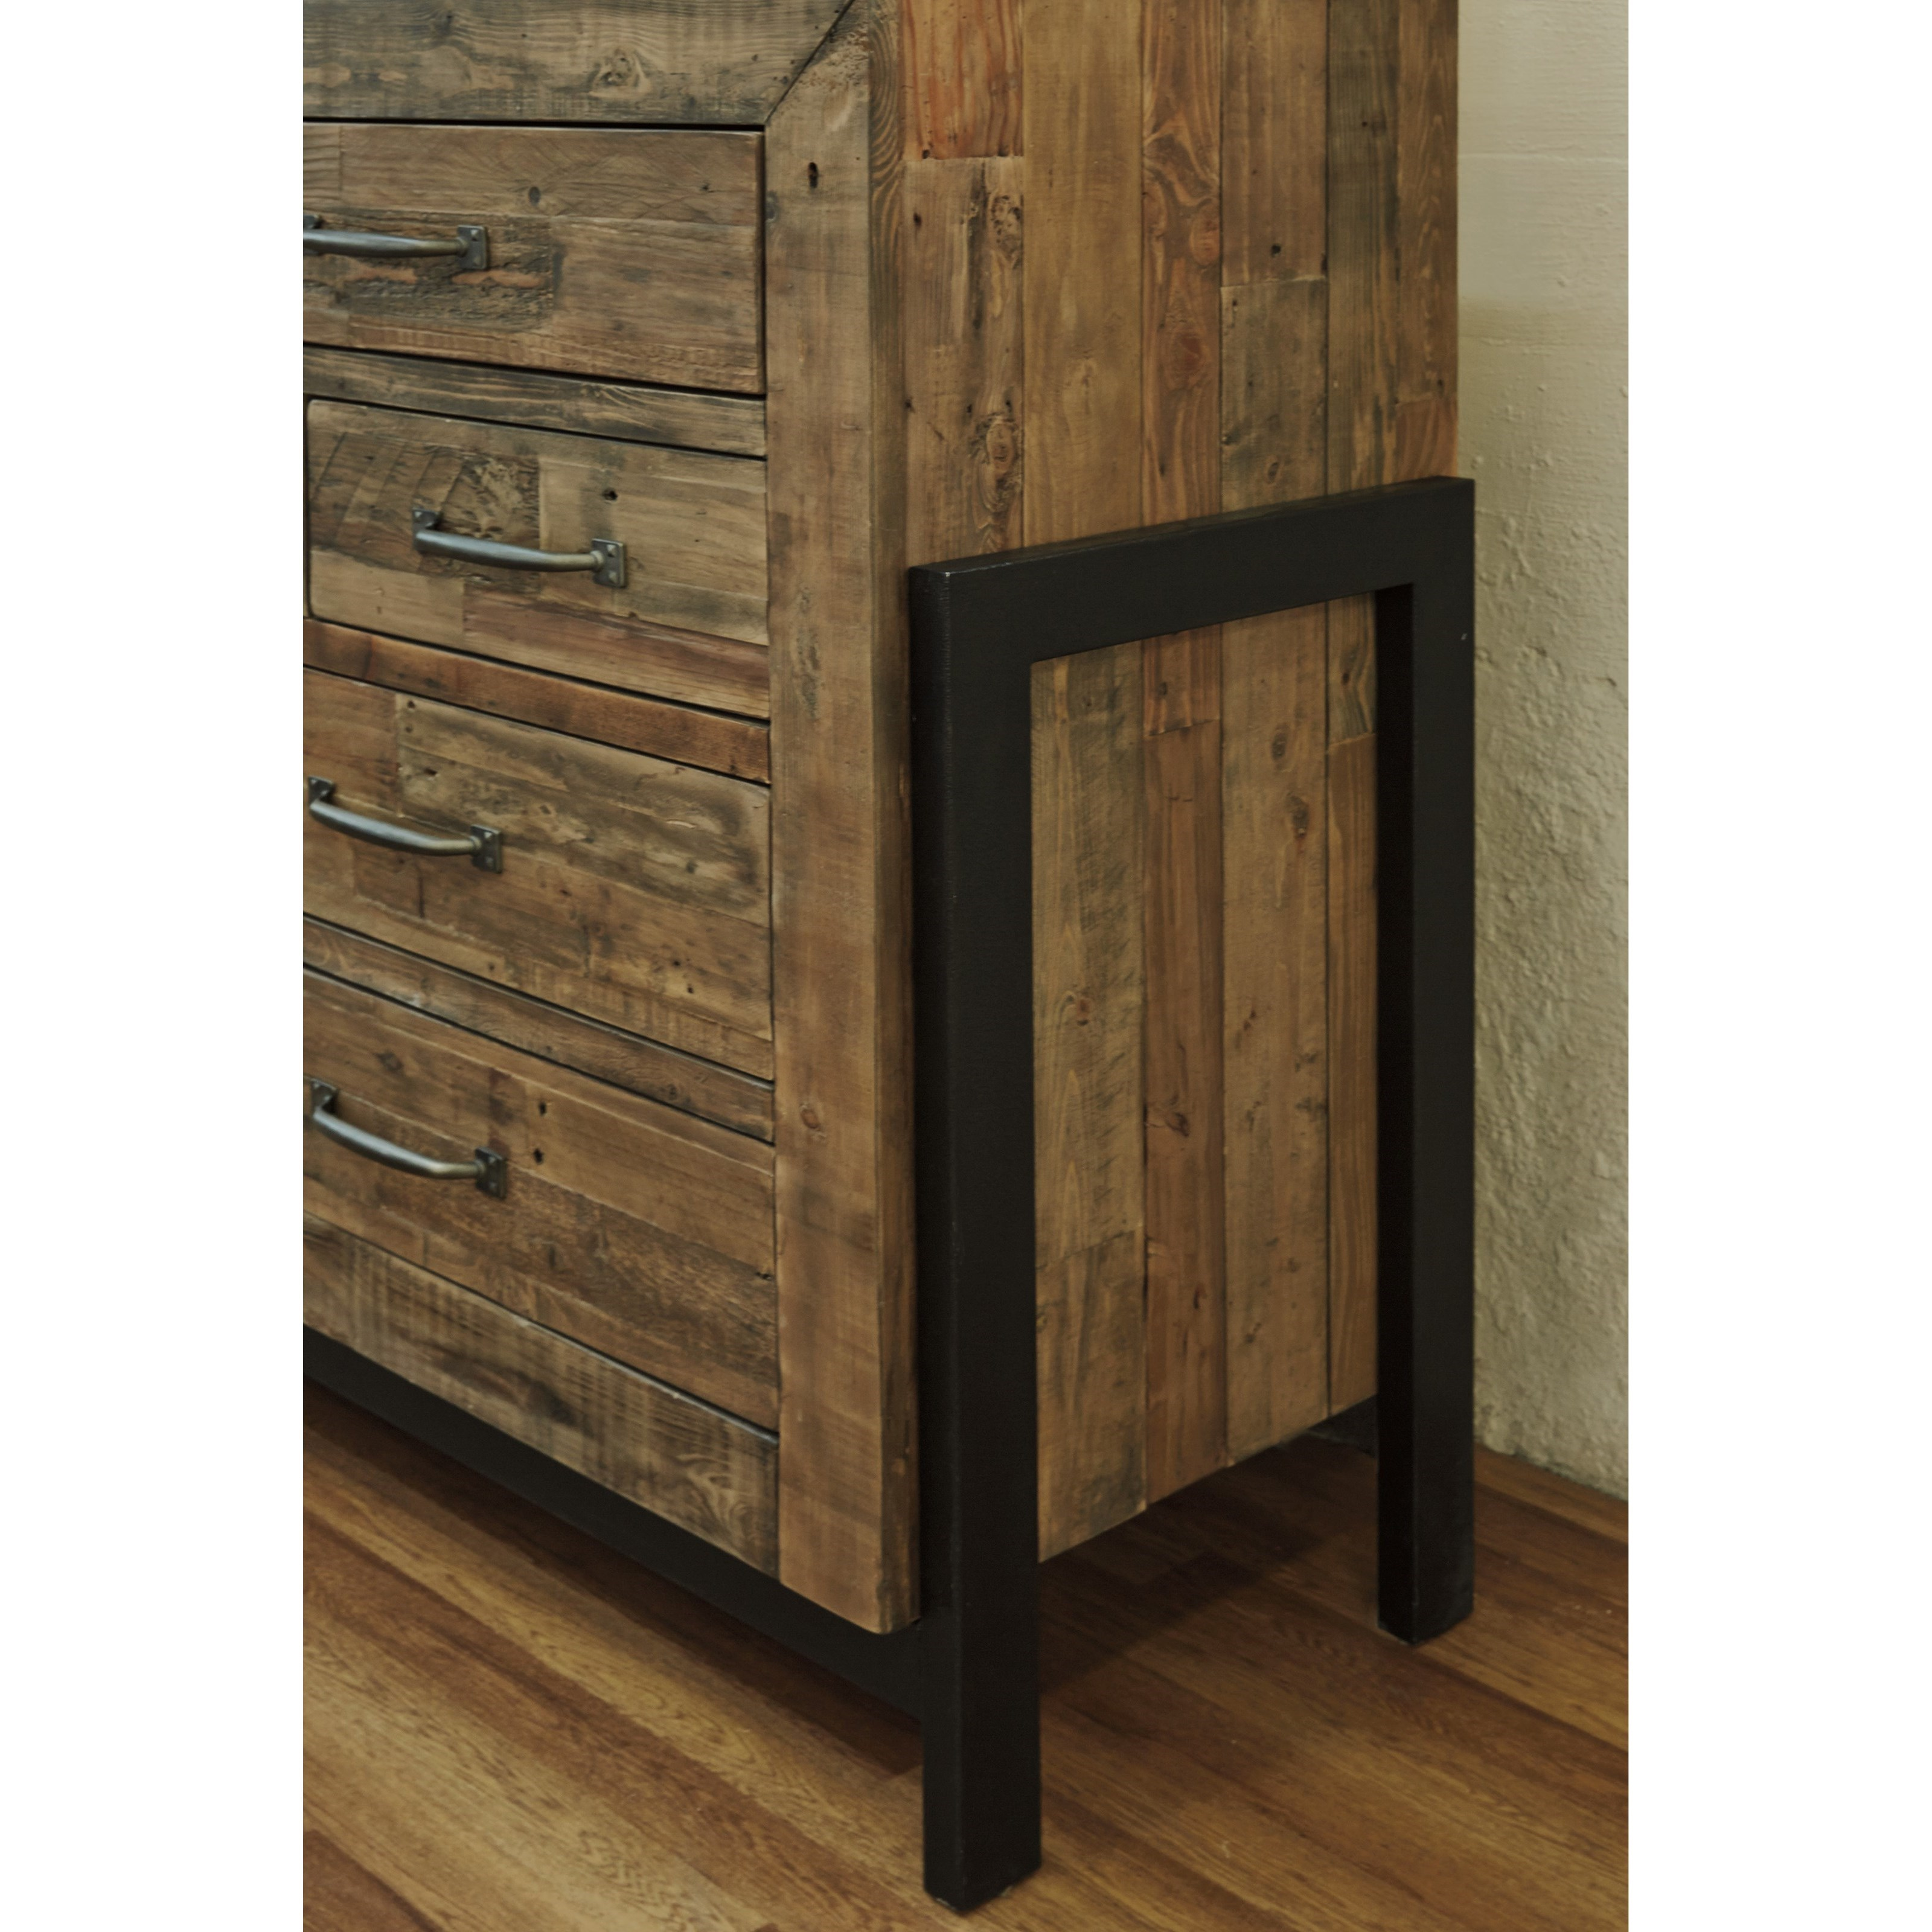 sommerford b77531 reclaimed pine solid wood dresser with metal frame by signature design by ashley